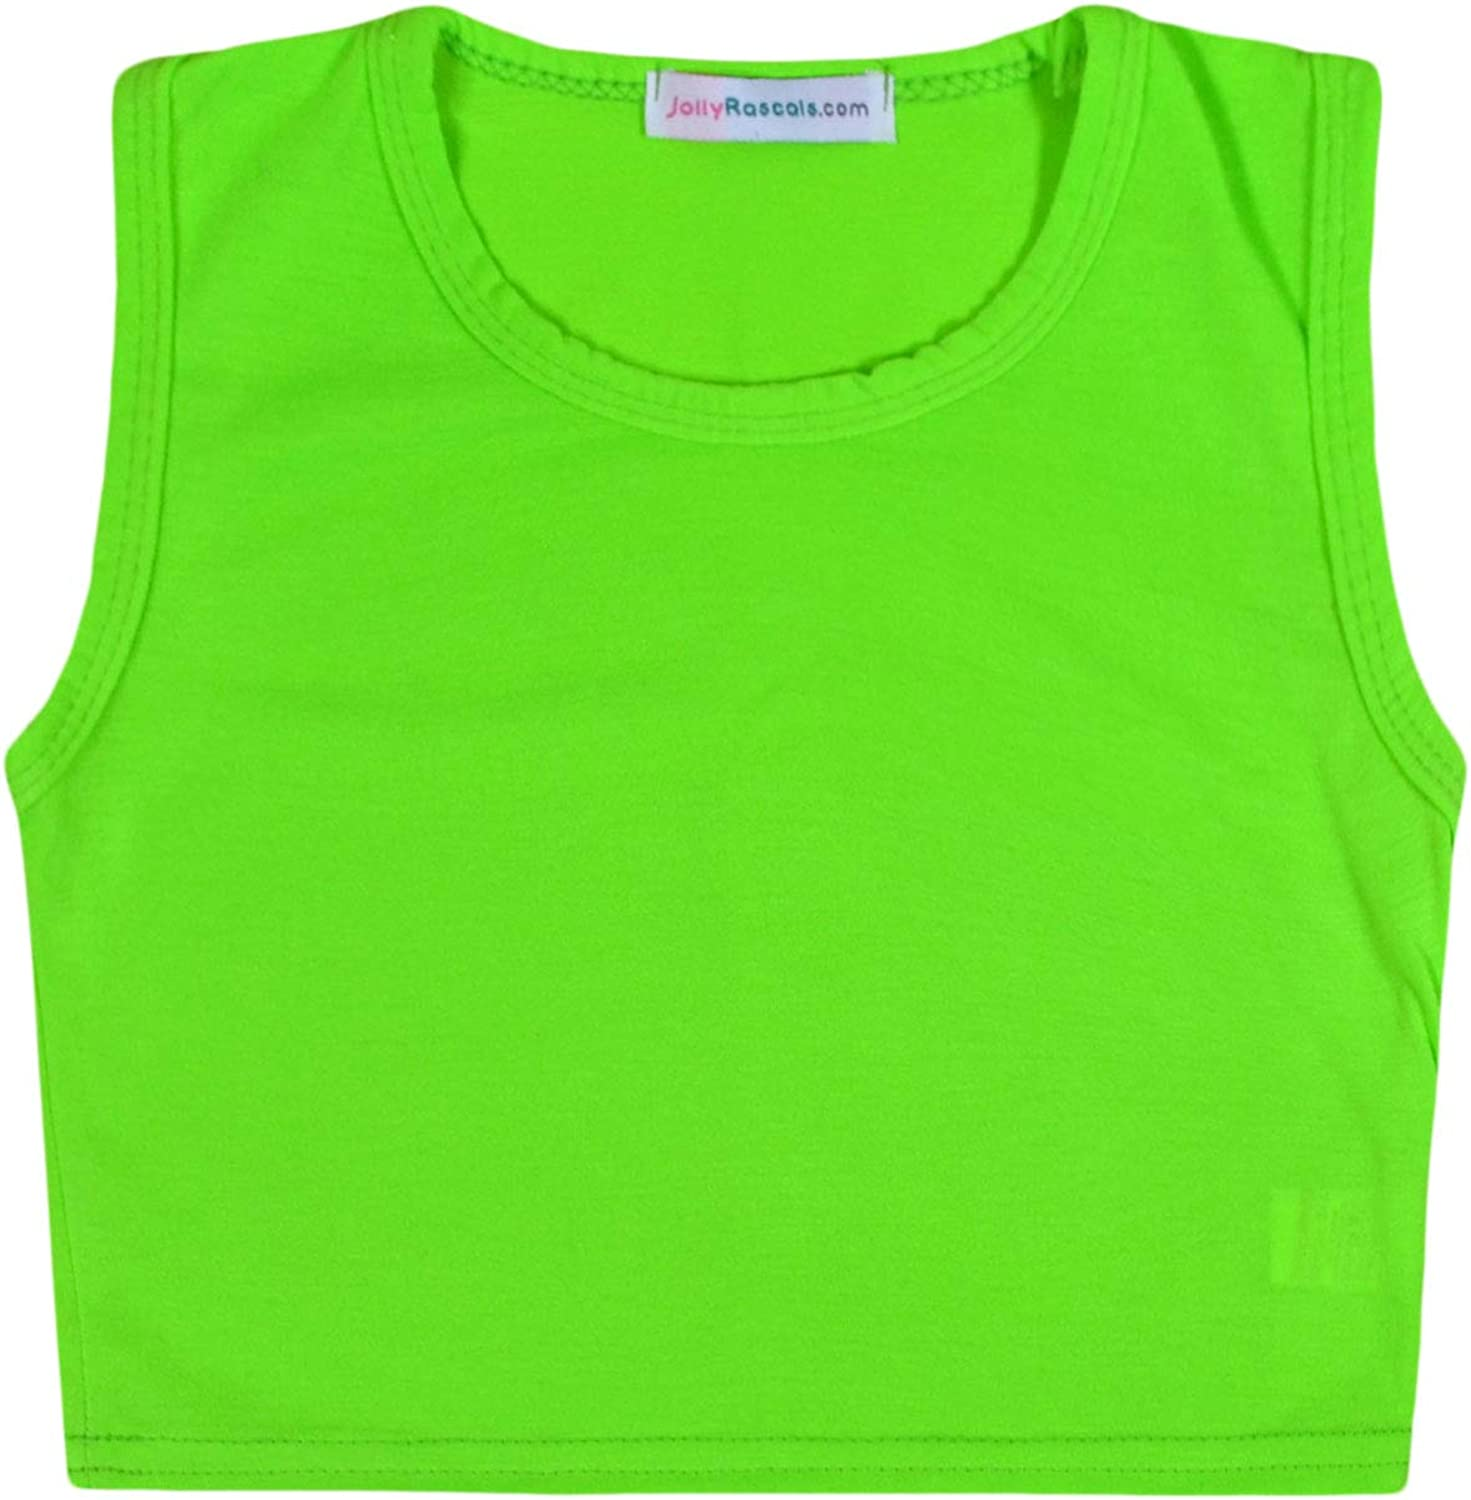 JollyRascals Girls Crop Top New Kids Sleeveless Stretch Plain T-Shirt Party Summer Holiday Dance Vest Top 8 Colors Age 5 6 7 8 9 10 11 12 13 Years